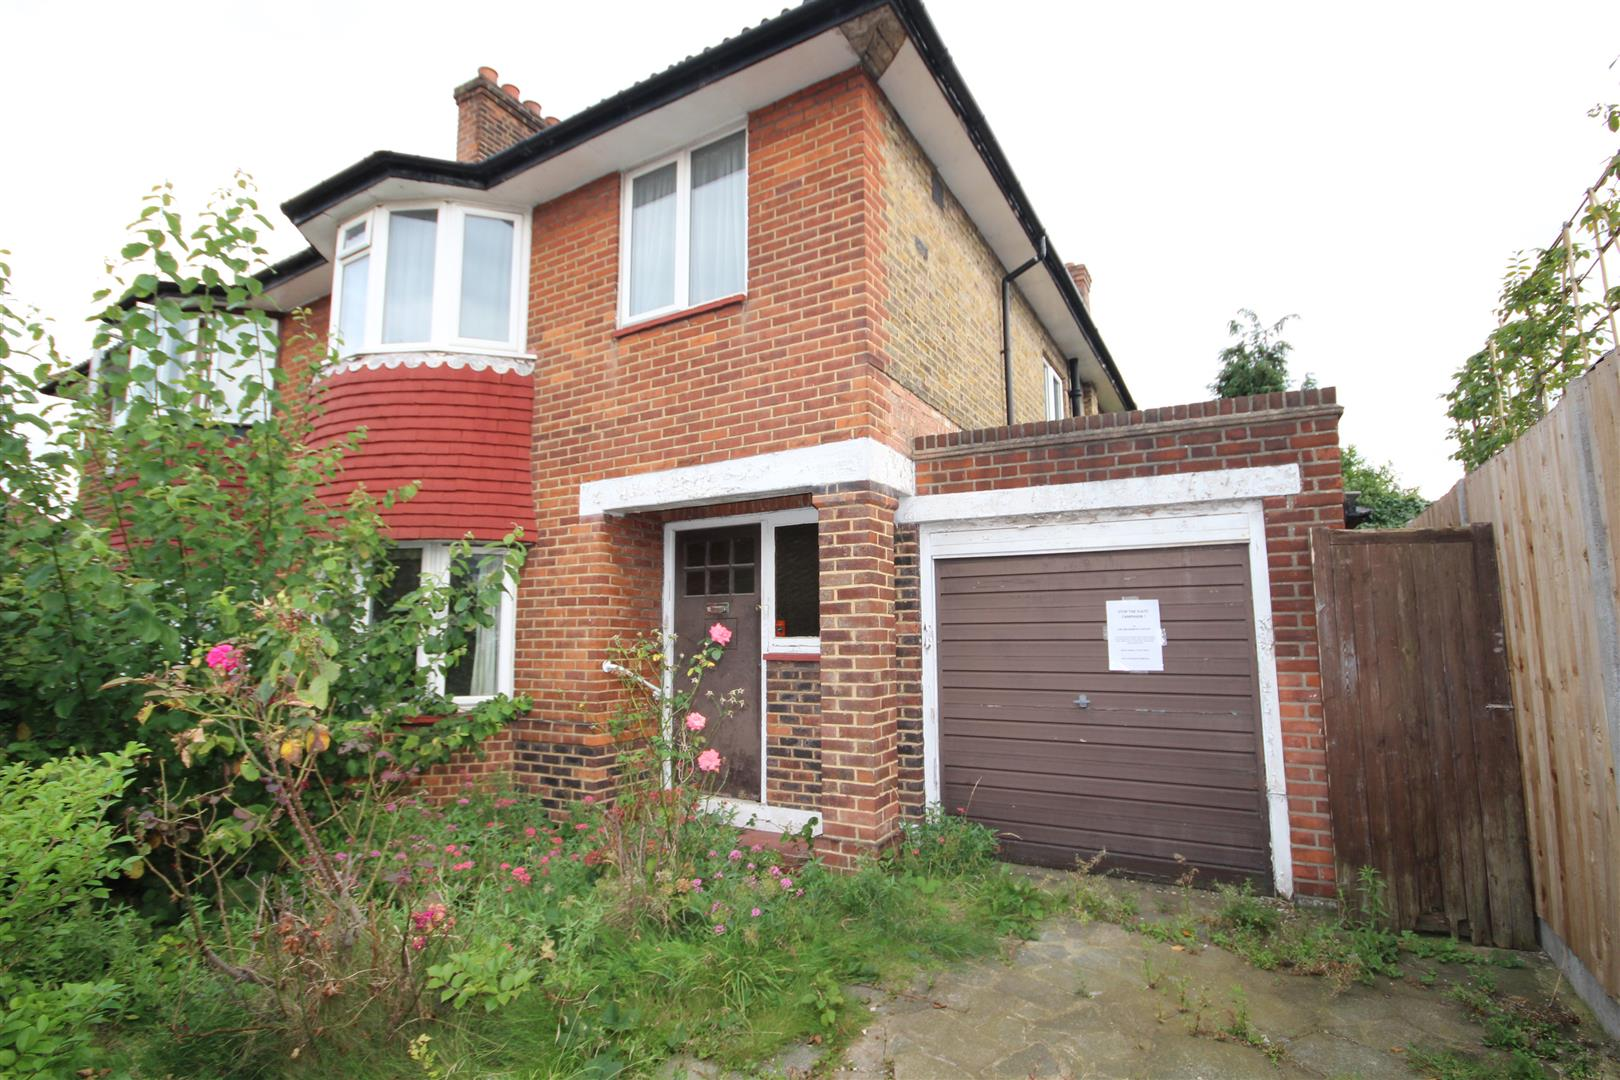 3 Bedrooms Semi Detached House for sale in Strelley Way, London